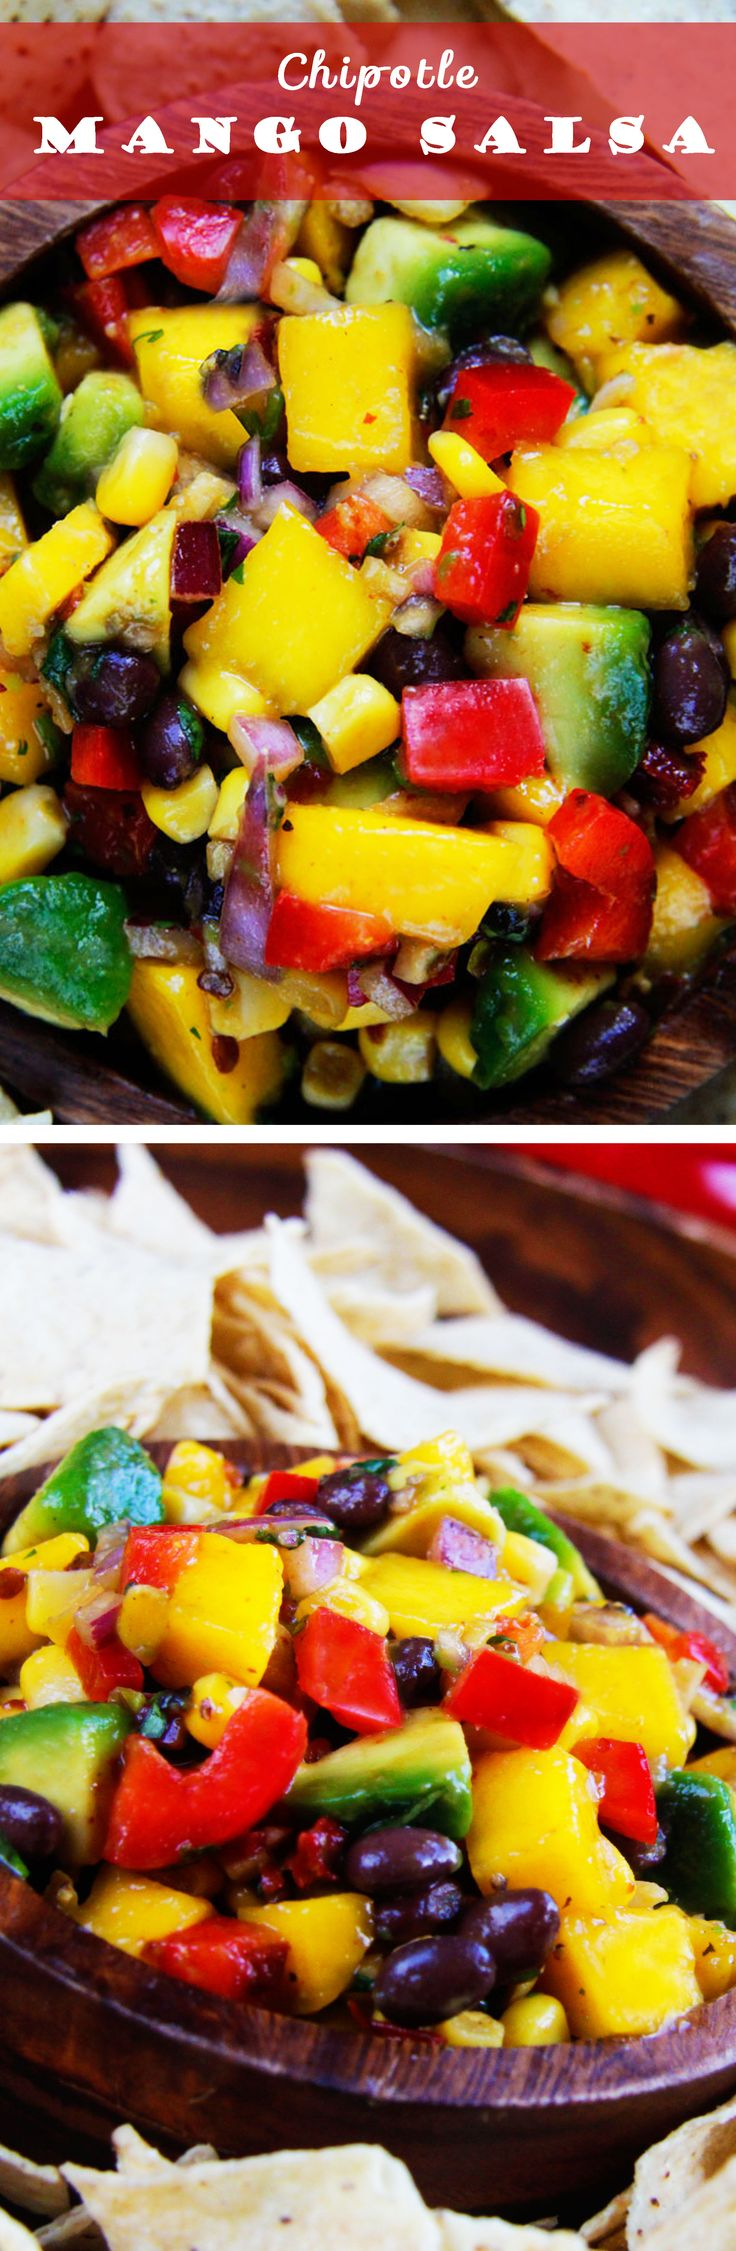 Fresh, vibrant, delicious & SO EASY! Just toss, chop, eat. So good with chips, tacos, fish, chicken and even plain! | Carlsbad Cravings